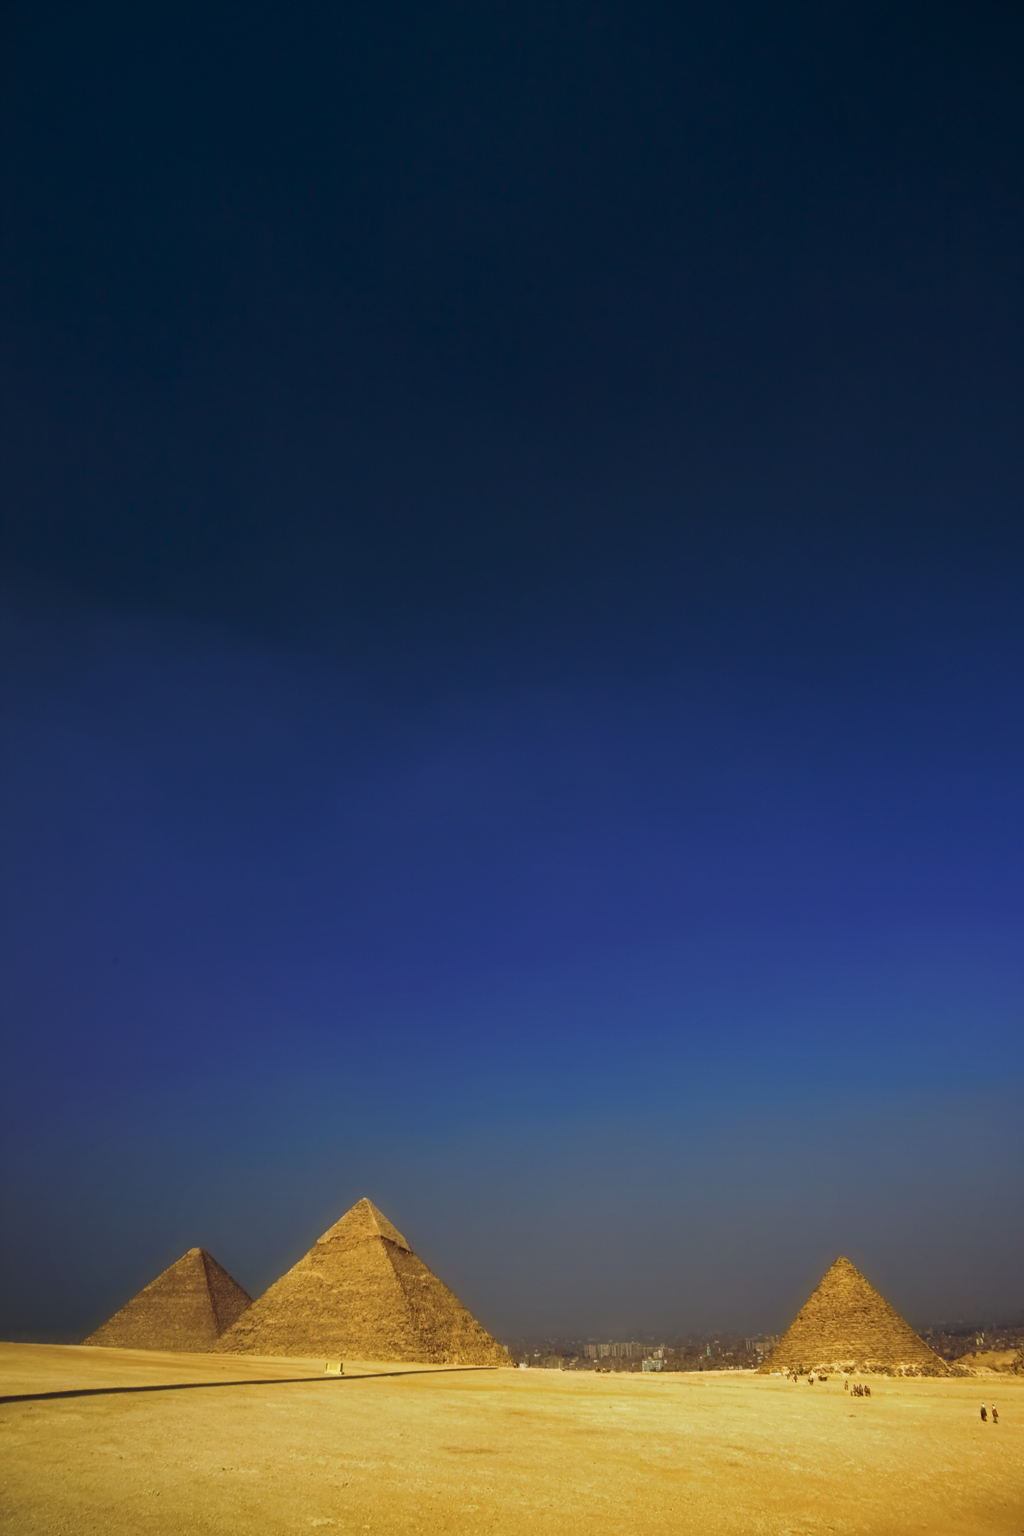 useful facts about the pyramids of egypt Some interesting facts on how the pyramids were built: khufu's pyramid, known as the great pyramid of giza, is the oldest and largest, rising at 481 feet (146 meters) archeologists say it was the tallest structure in the world for about 3, 800 years.